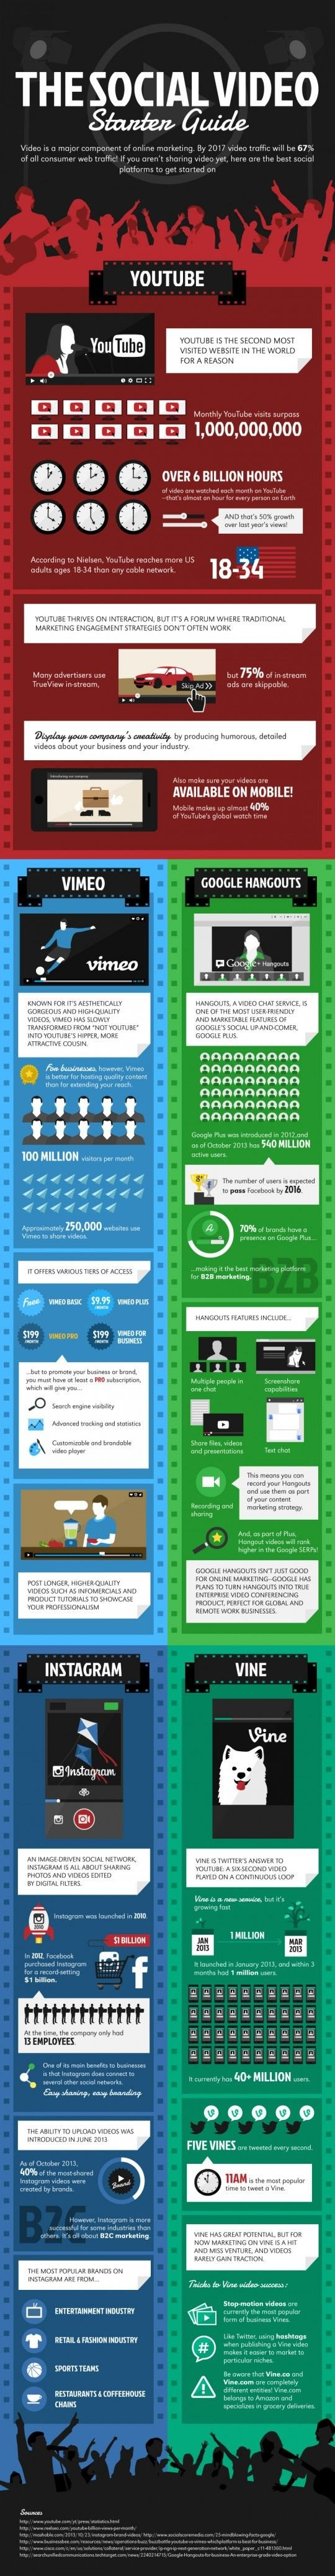 The Social Video Starter Guide #infographic